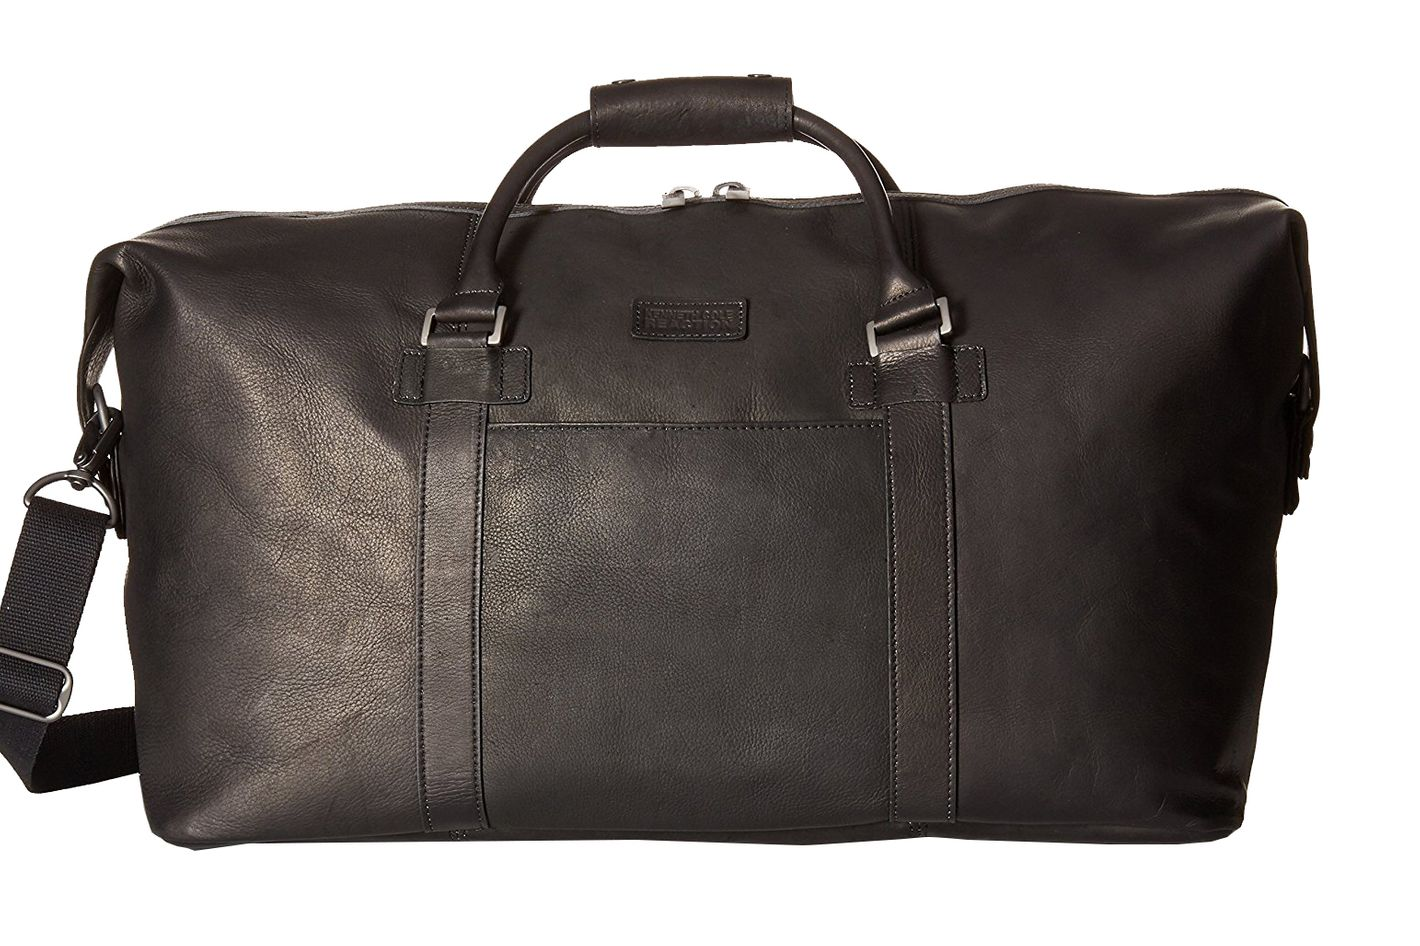 Kenneth Cole Reaction Colombian Leather Duffle Bag